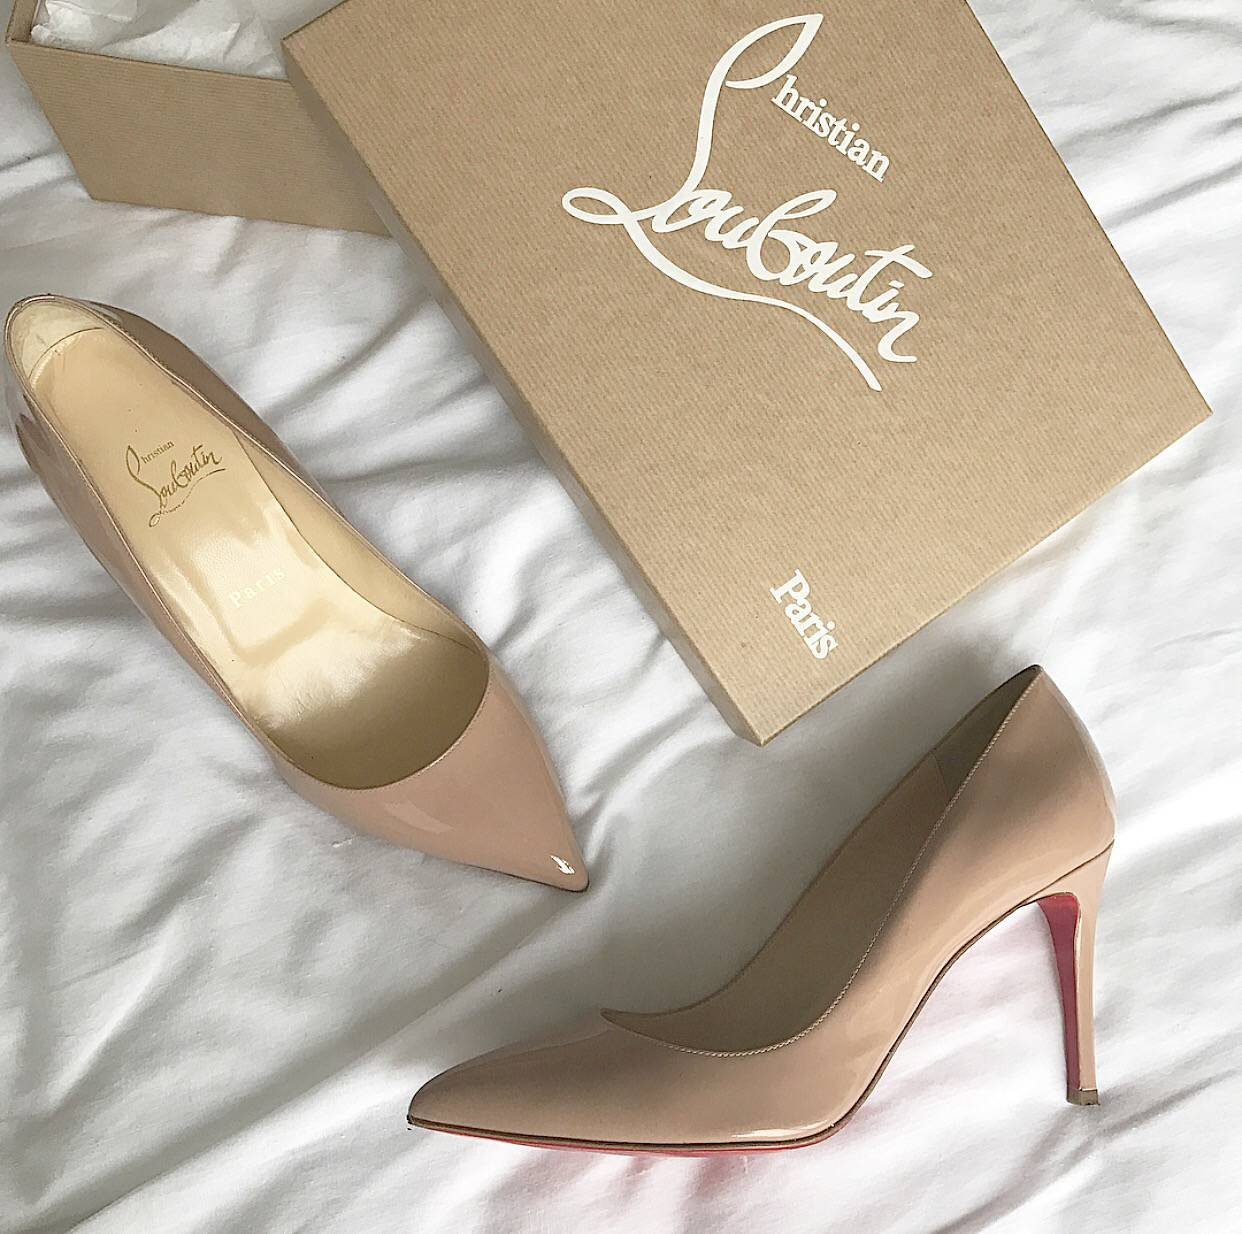 Christian Louboutin Pigalle 85 Nude